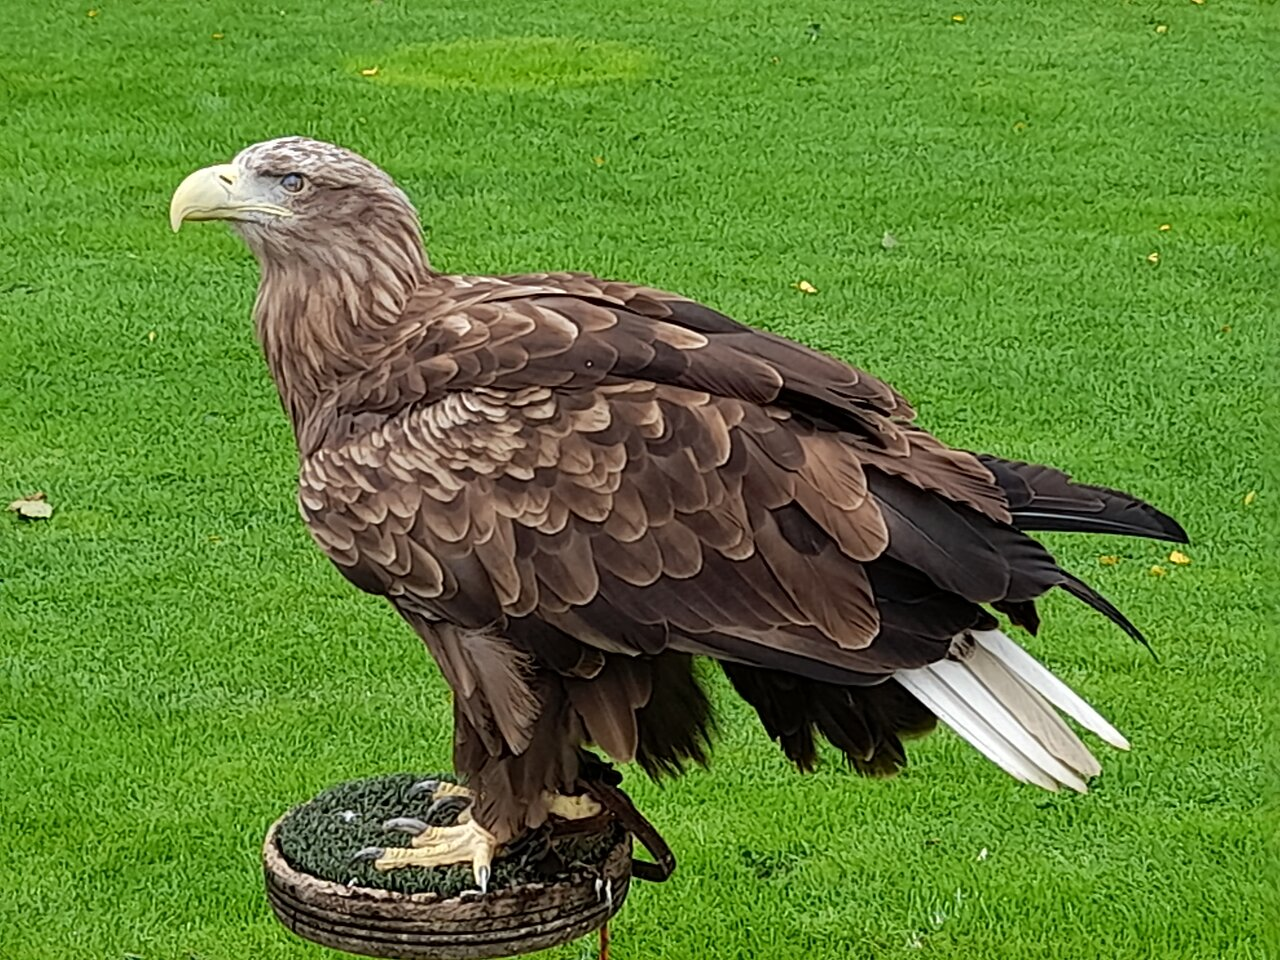 Falconry Uk Thirsk Birds Of Prey Centre 2020 All You Need To Know Before You Go With Photos Tripadvisor